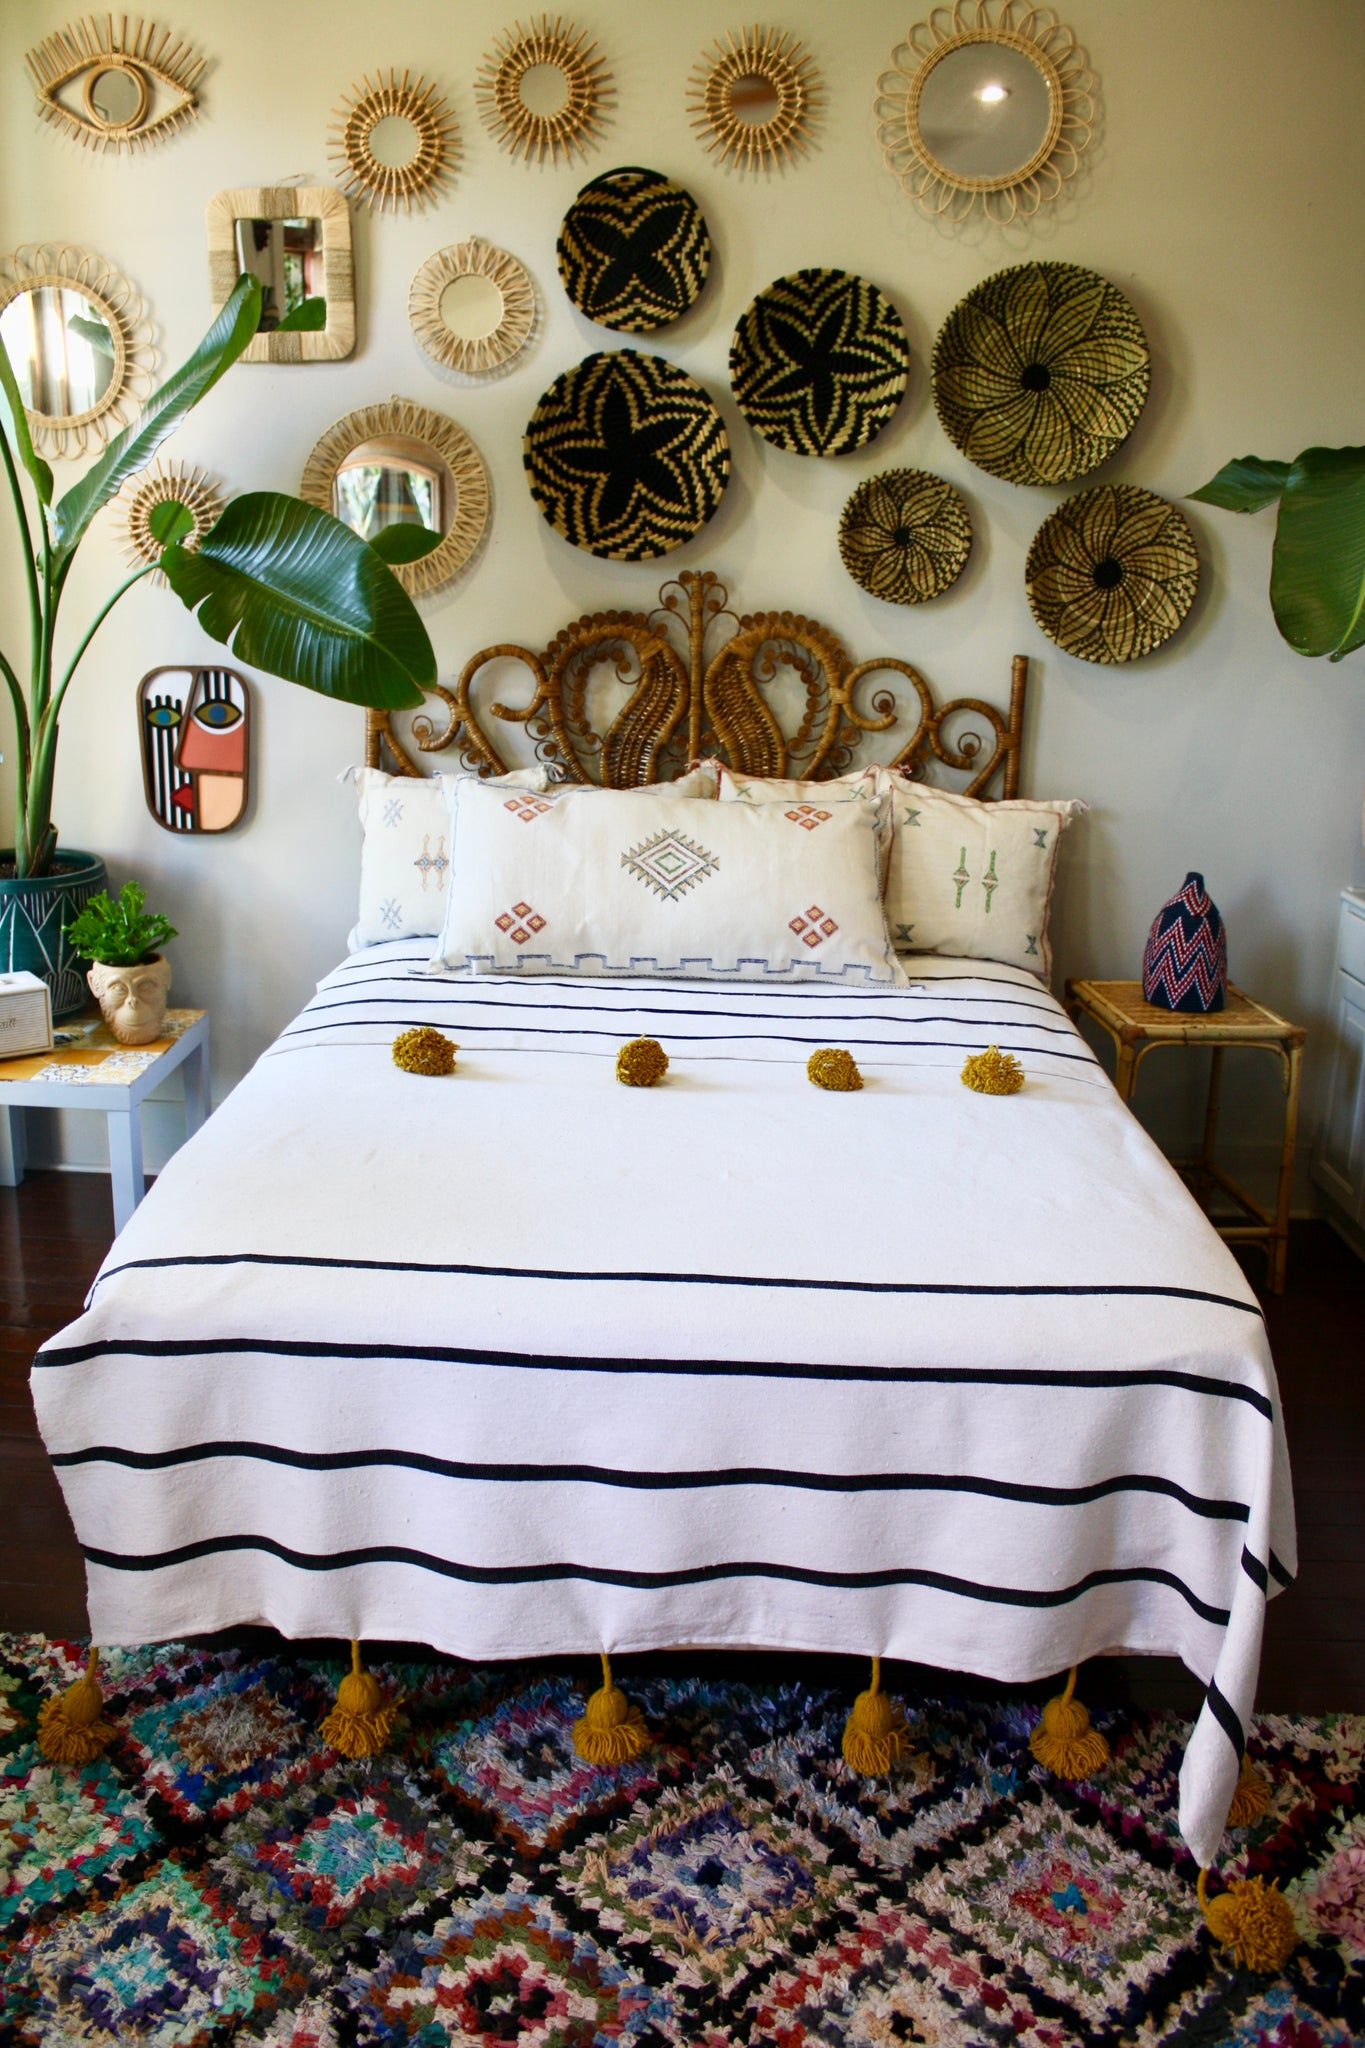 Black & Gold Pom Pom Queen Bedspread